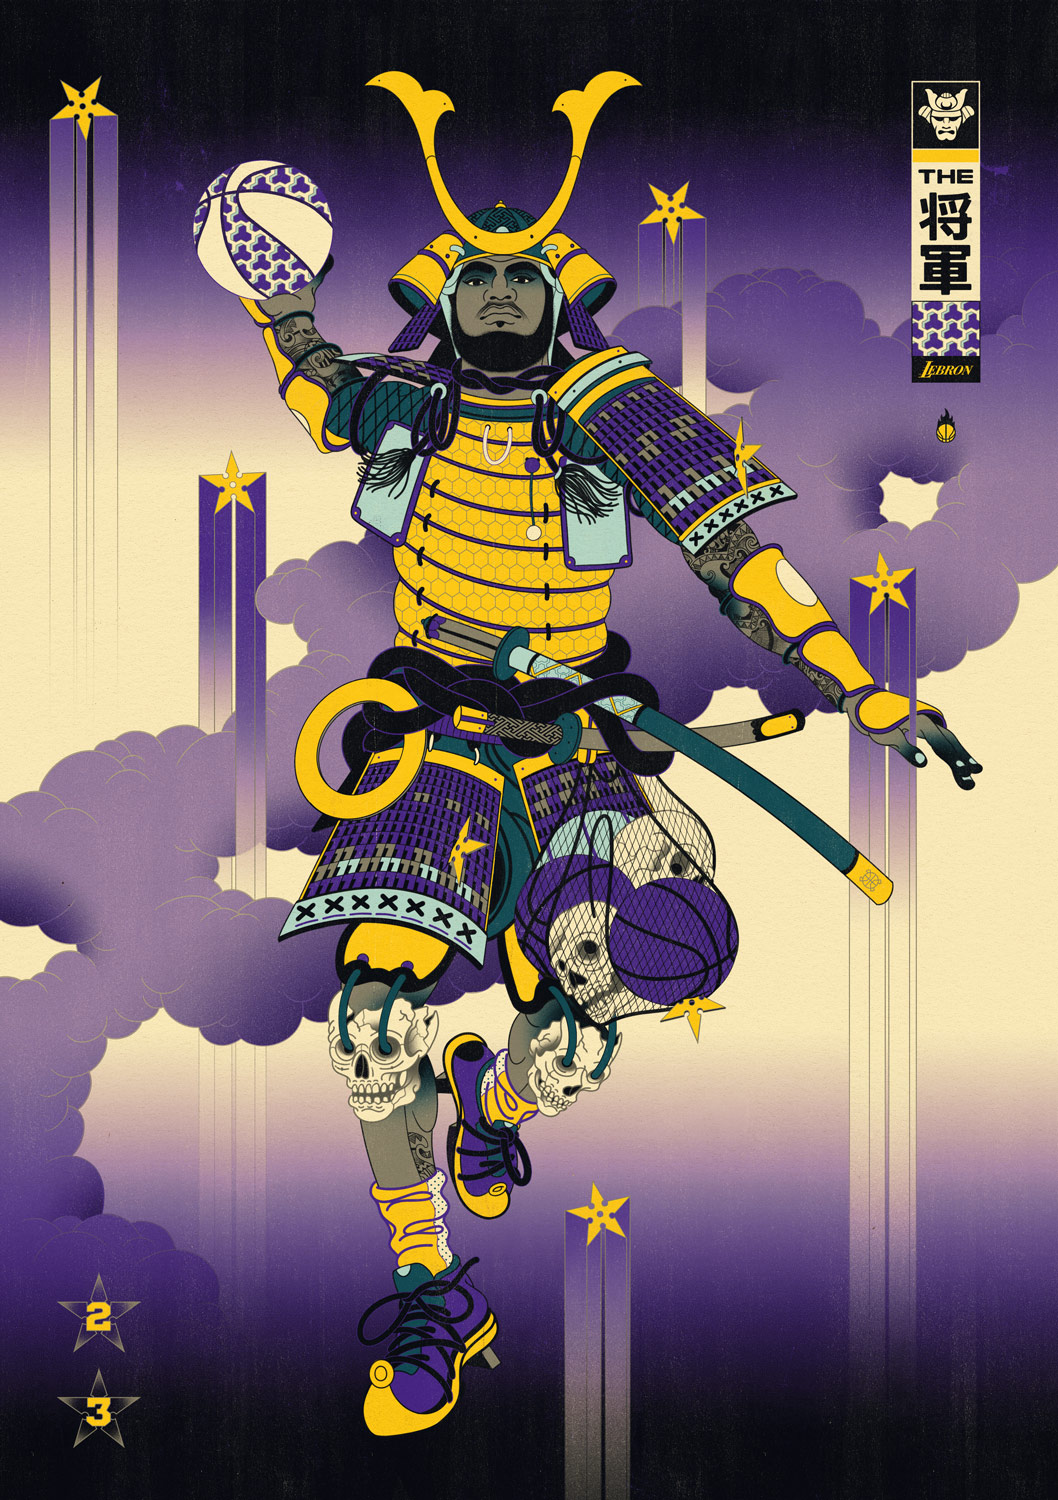 Edo Ball NBA Basketball Art - Shogun Lebron james.